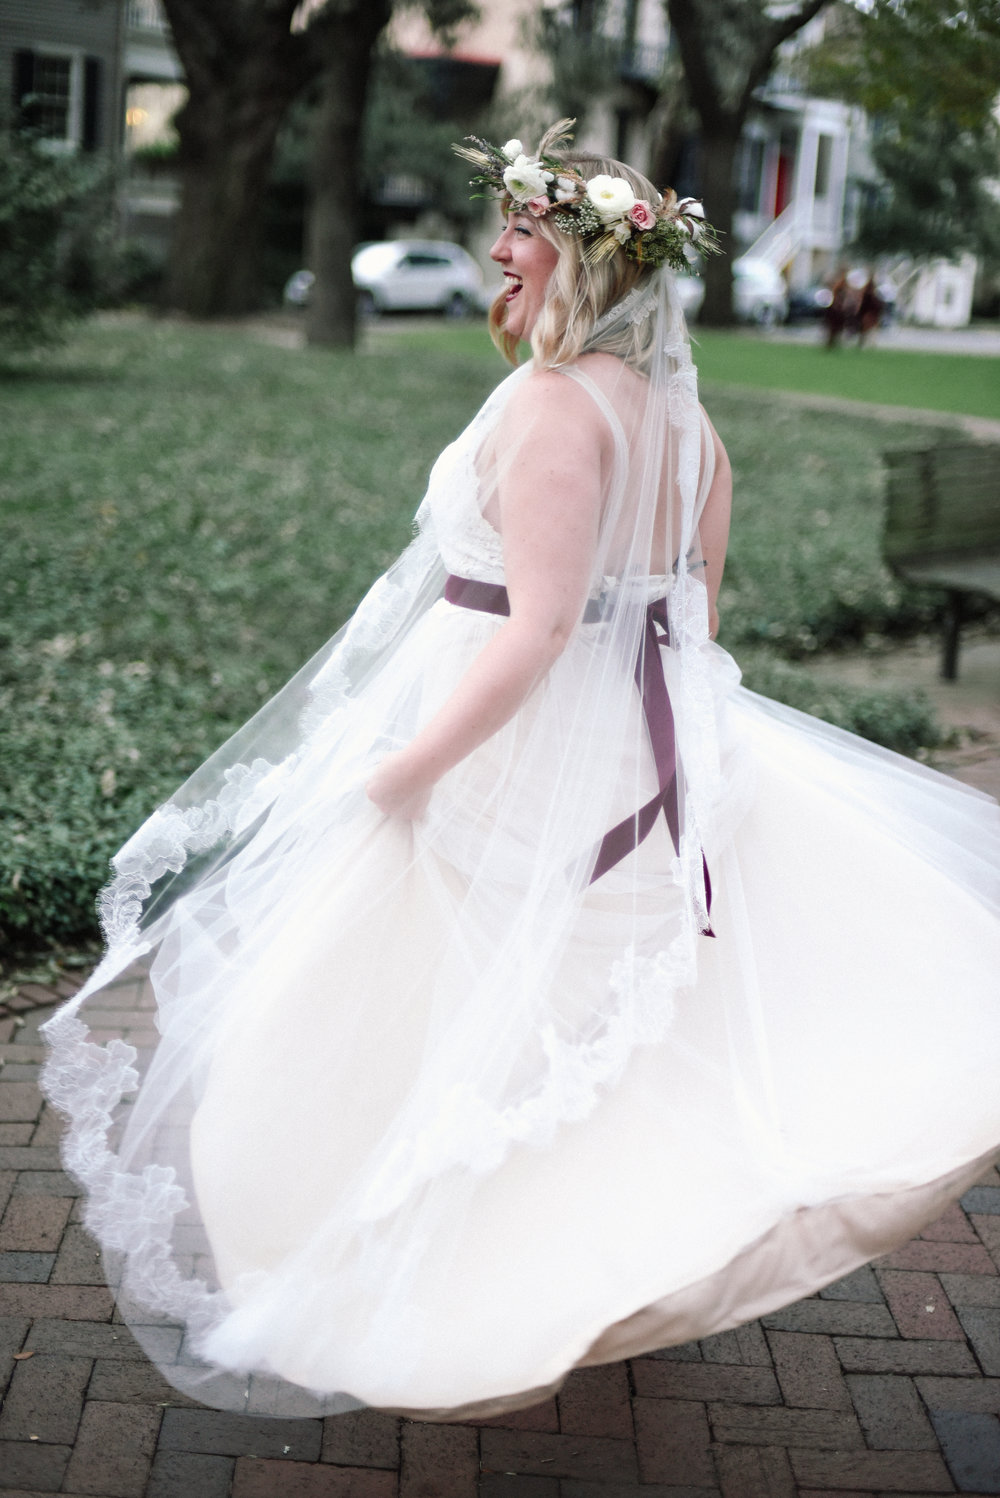 daniel-eastwood-photography-apt-b-photography-7553-ti-adora-ivory-and-beau-bridal-boutique-savannah-wedding-dresses-savannah-bridal-gowns-savannah-bridal-southern-bride-hilton-head-bridal-boho-bride-savannah-wedding-florist-savannah-wedding-planner-16.JPG